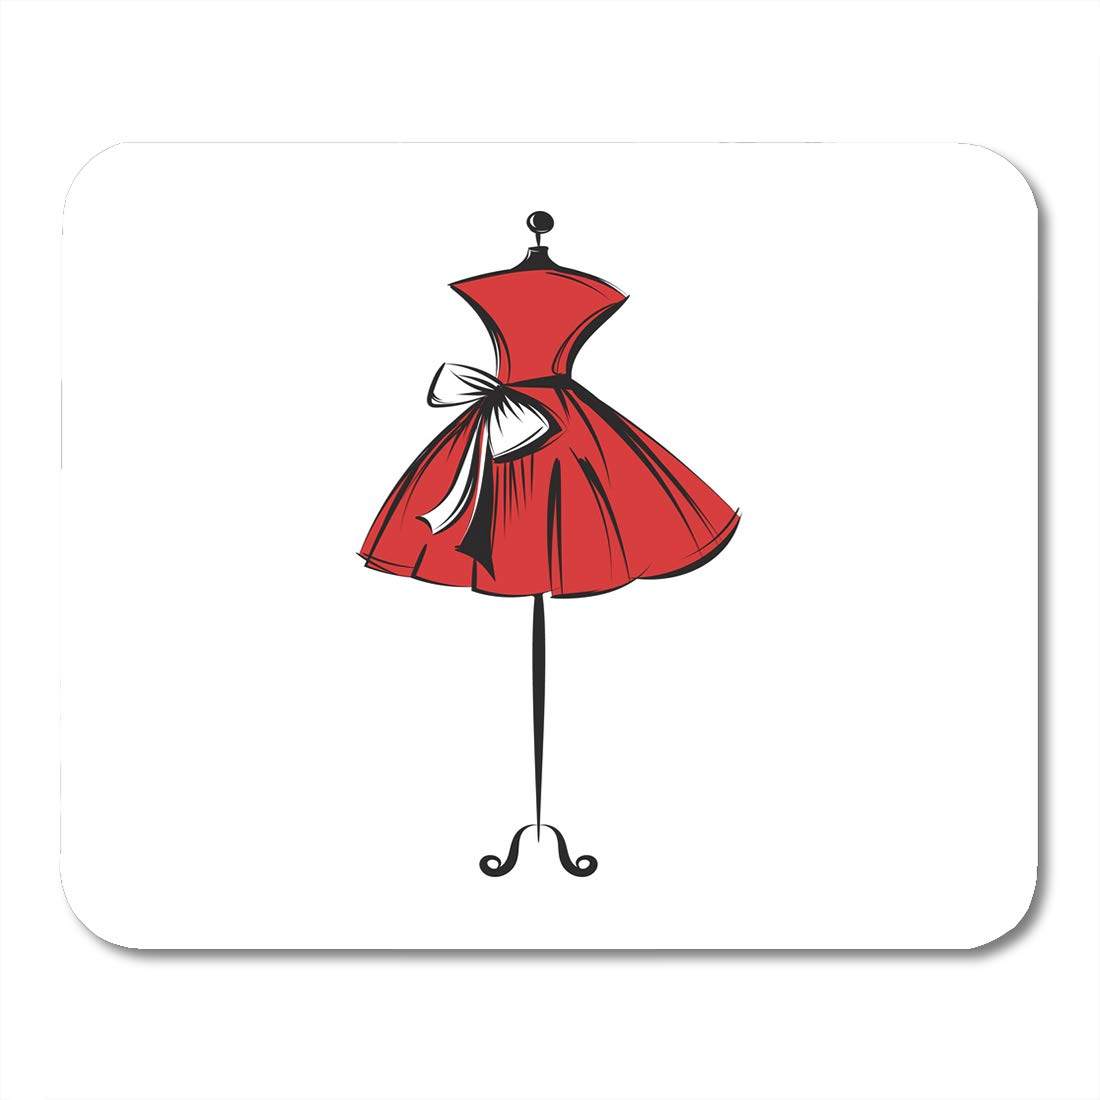 1100x1100 Nakamela Mouse Pads Sketch Red Dress Ball Gown Short